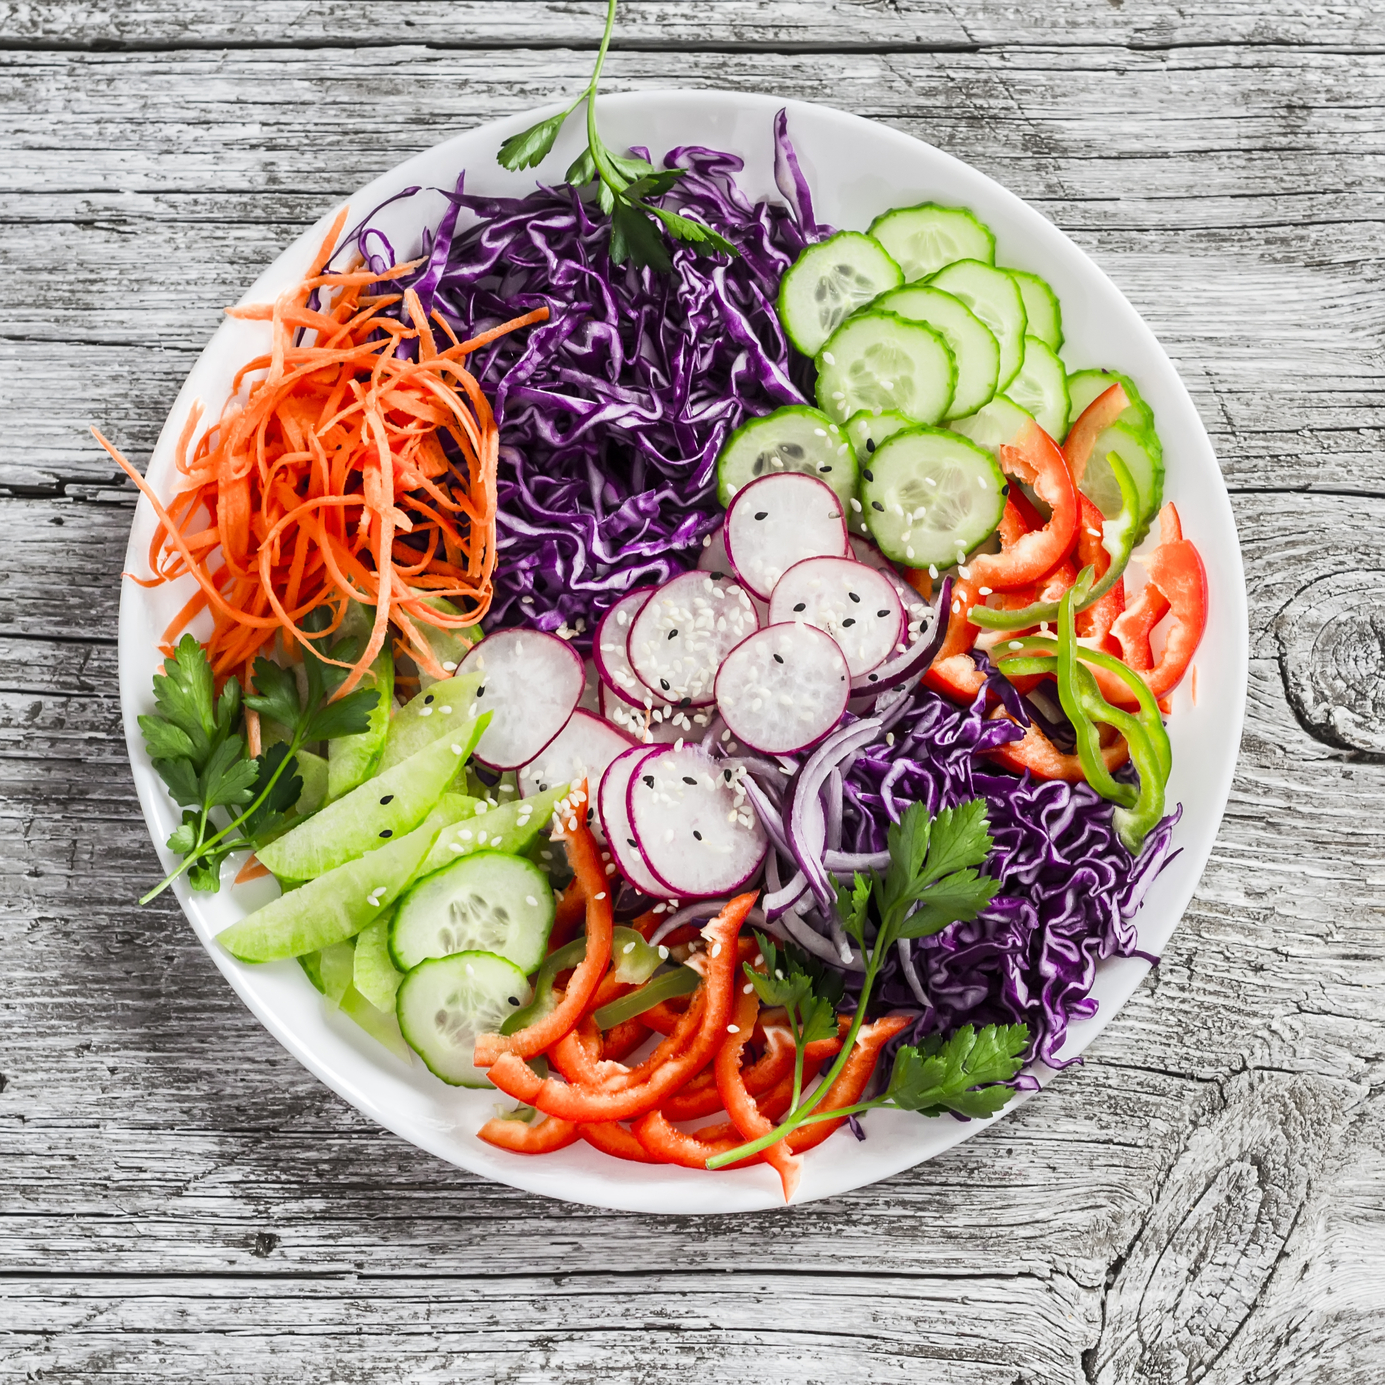 vegetable salad with red cabbage, cucumber, radish, carrots, sweet peppers